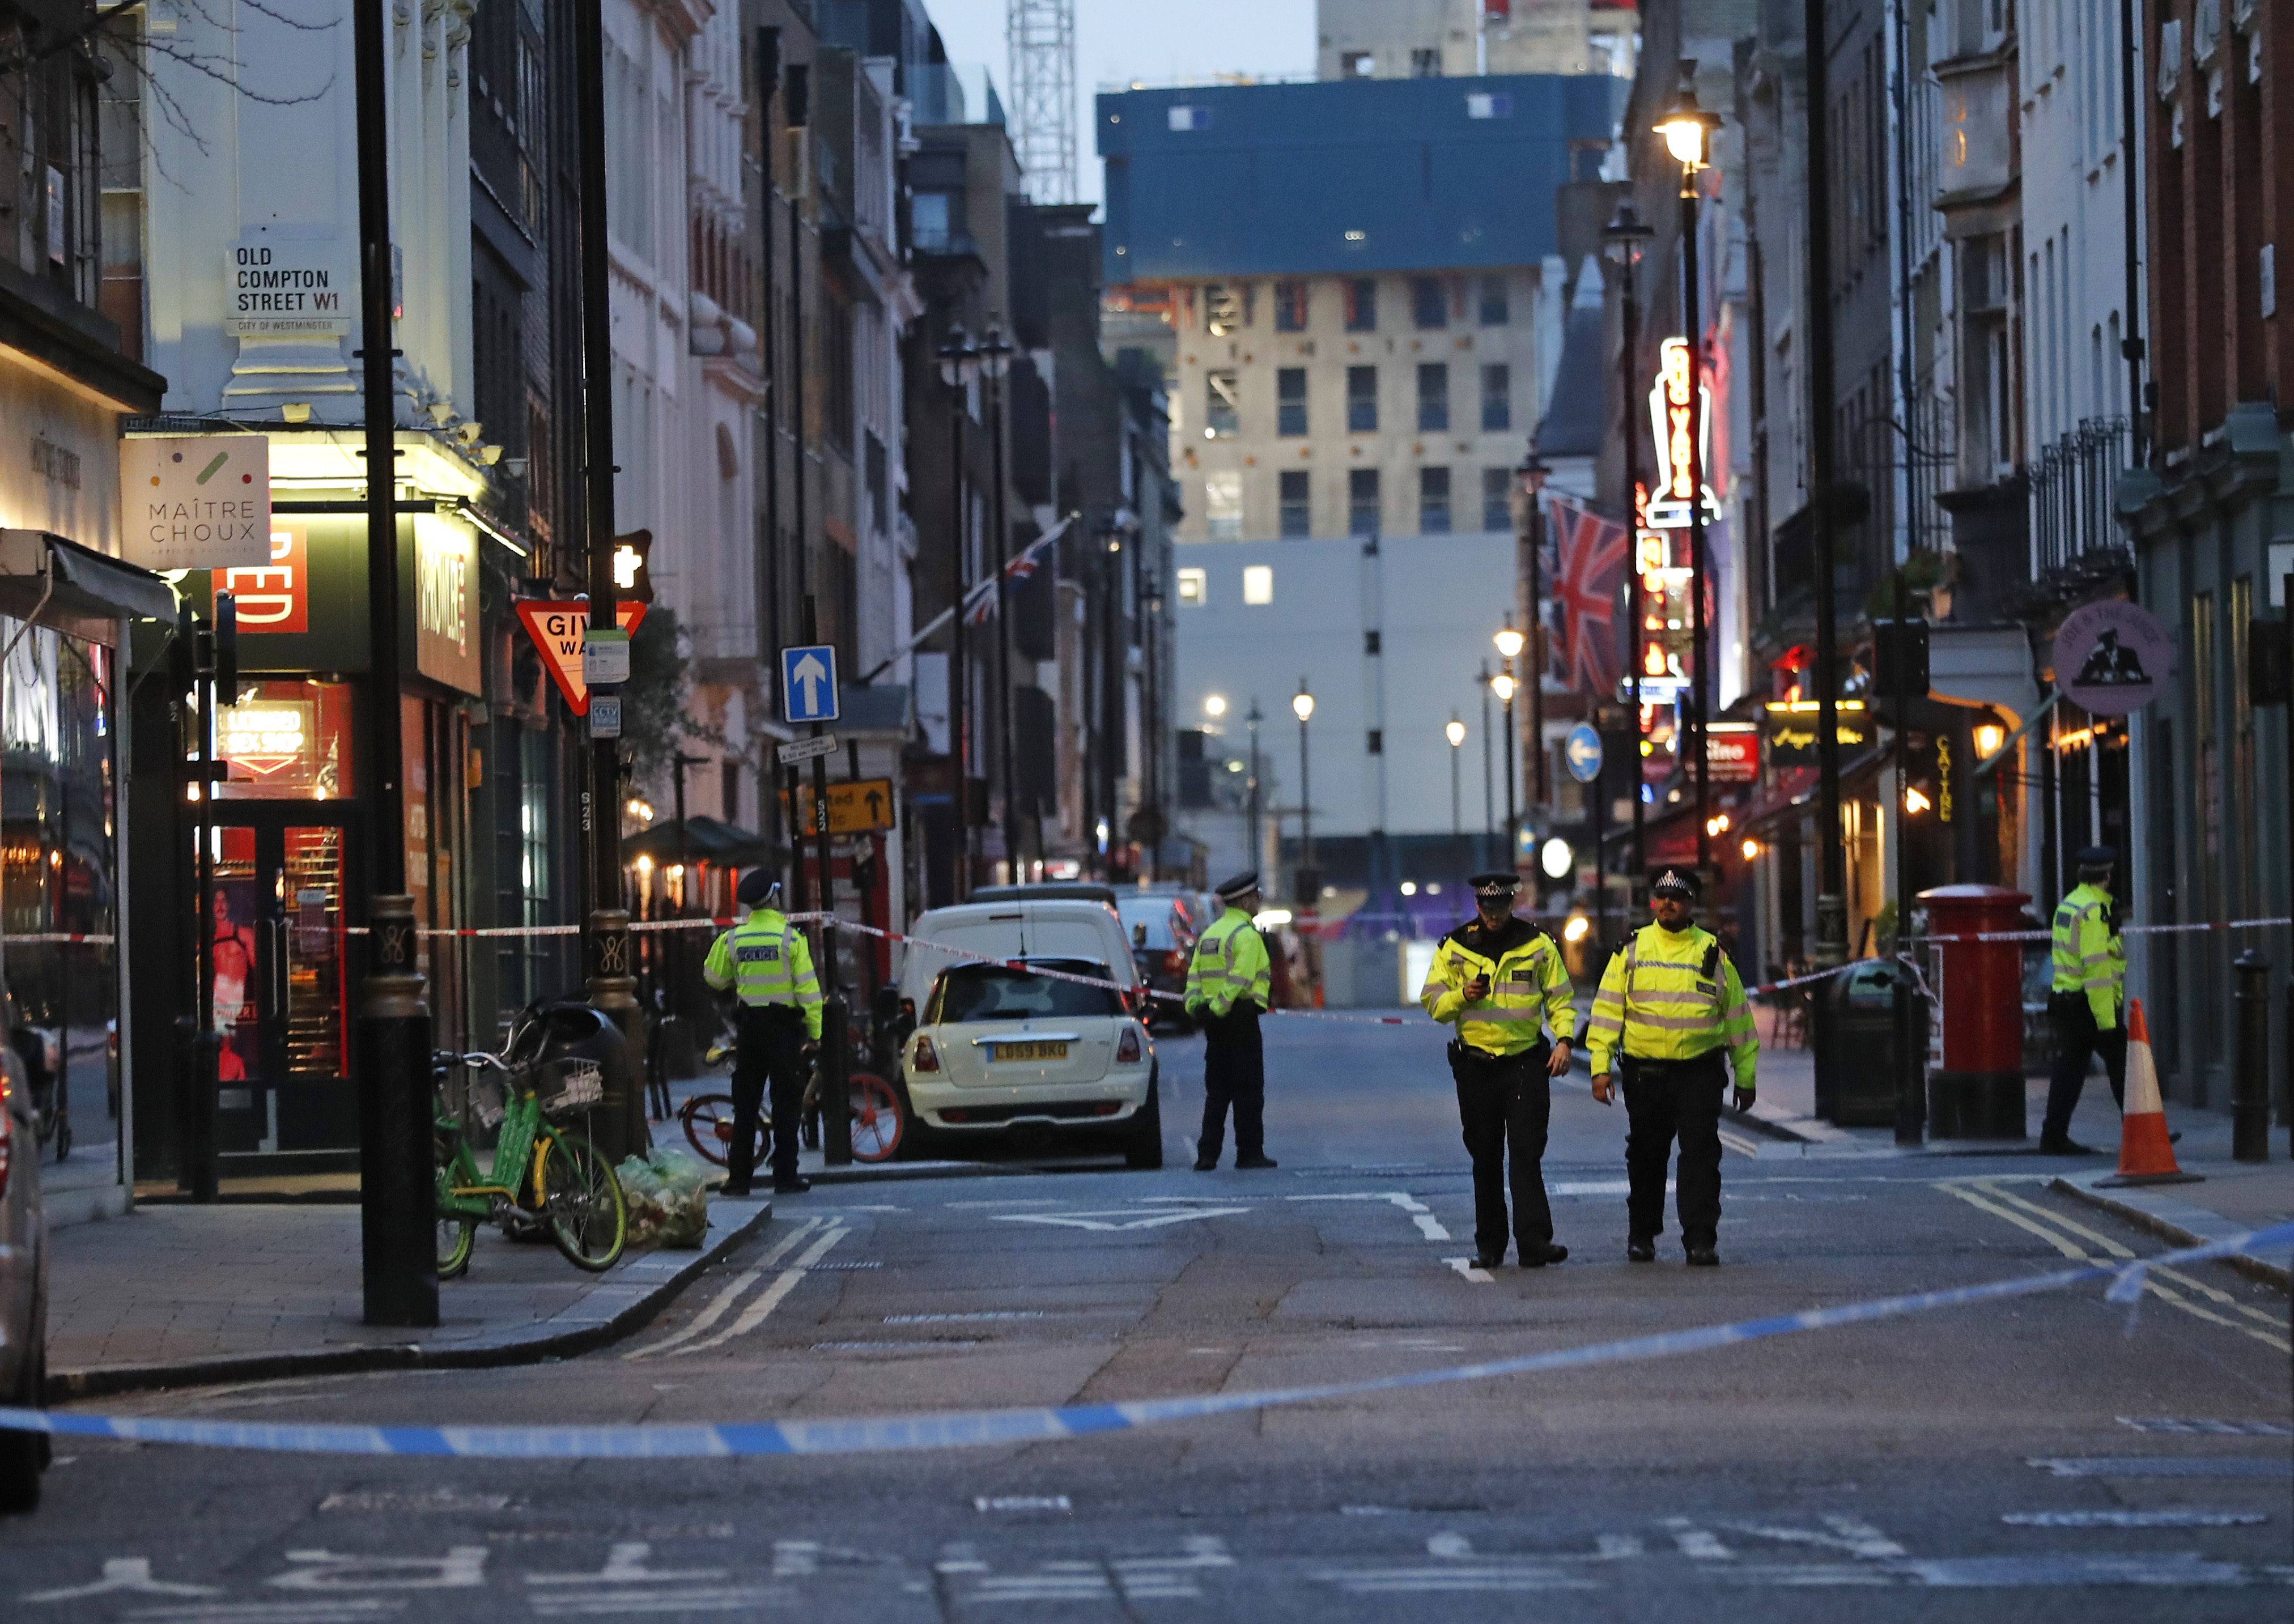 Police officers walk in a blocked a street in the Soho area of London after what's thought to be an unexploded World War II bomb was dug up at a construction site Monday Feb. 3, 2020. An area covering several blocs of the tightly packed neighborhood was cordoned off while police assessed the device.